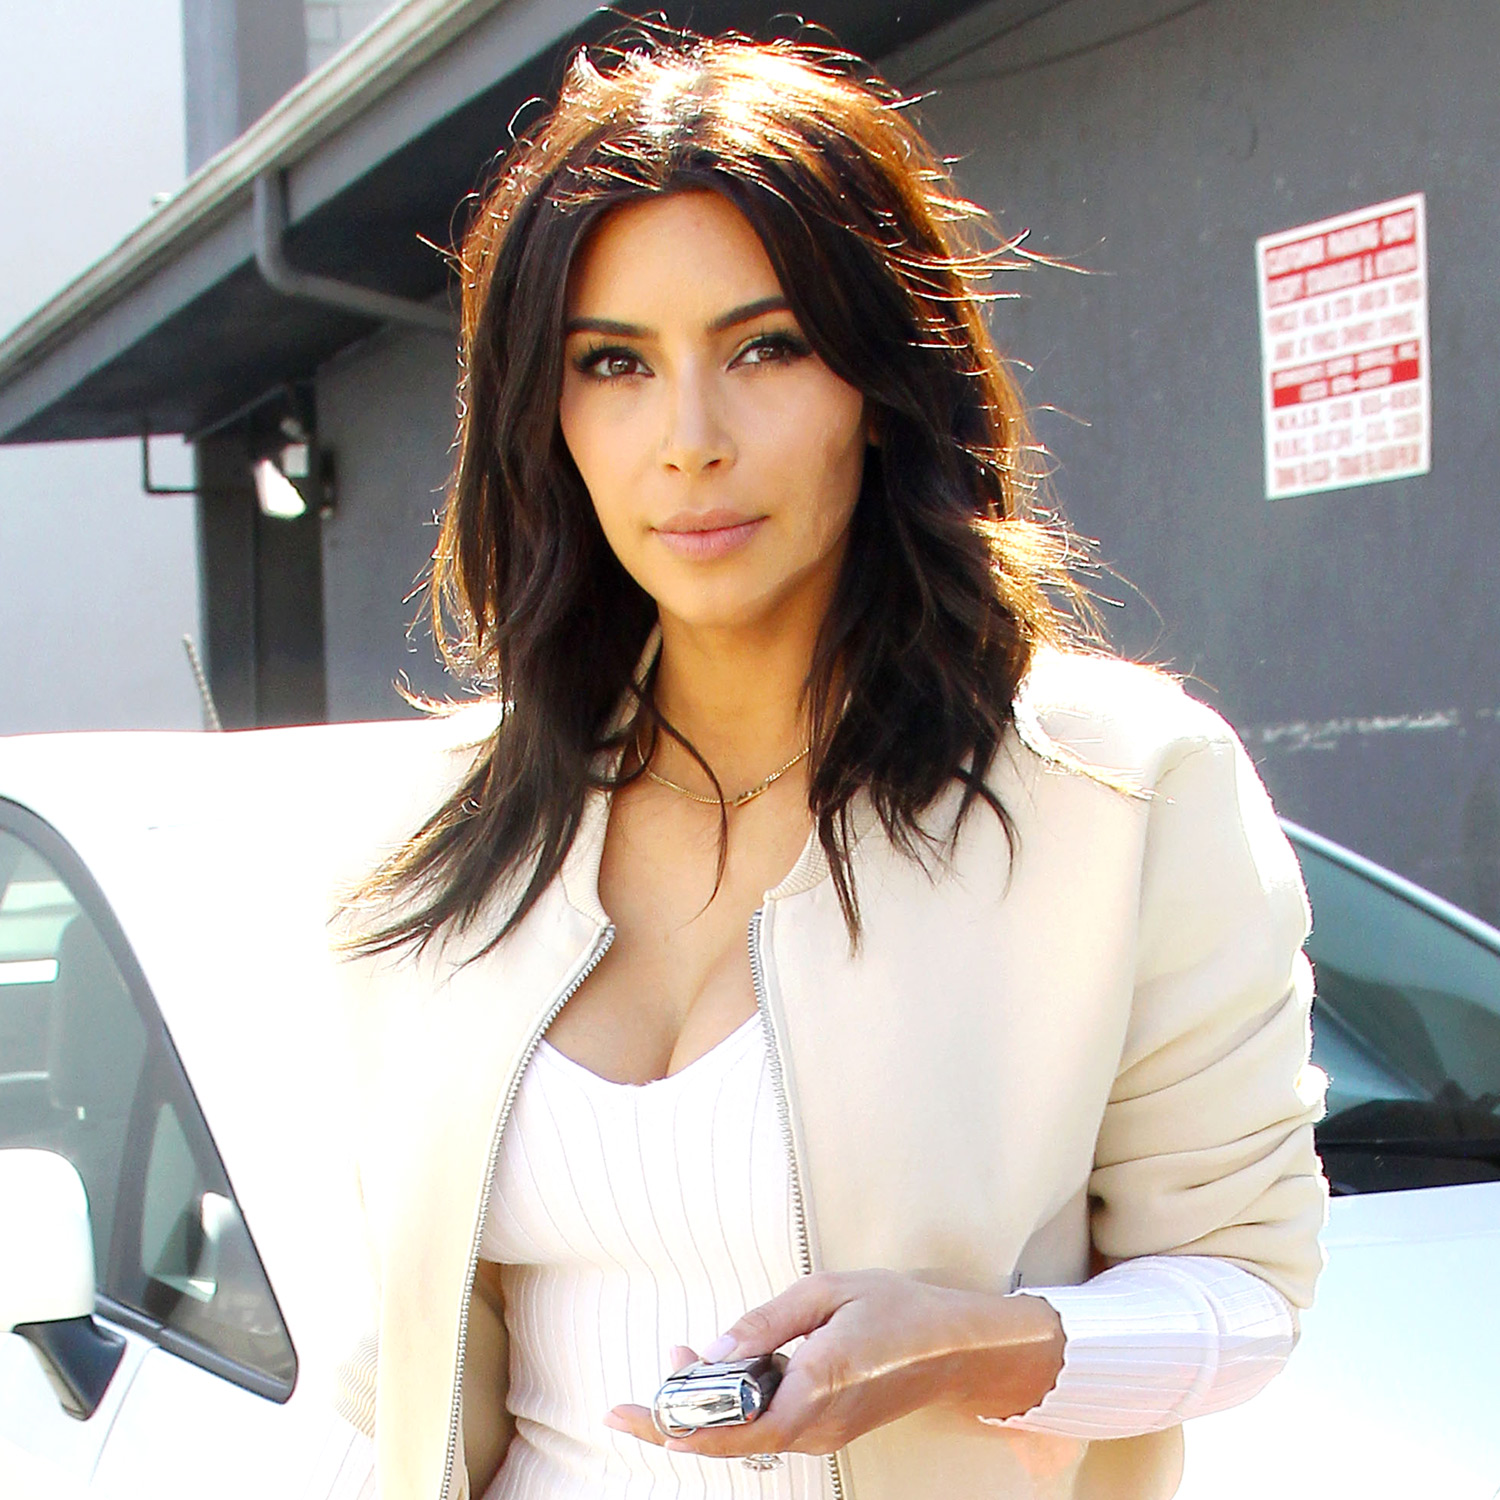 kim kardashian short hairstyles : Kim Kardashians Shorter Hair - Fashion News